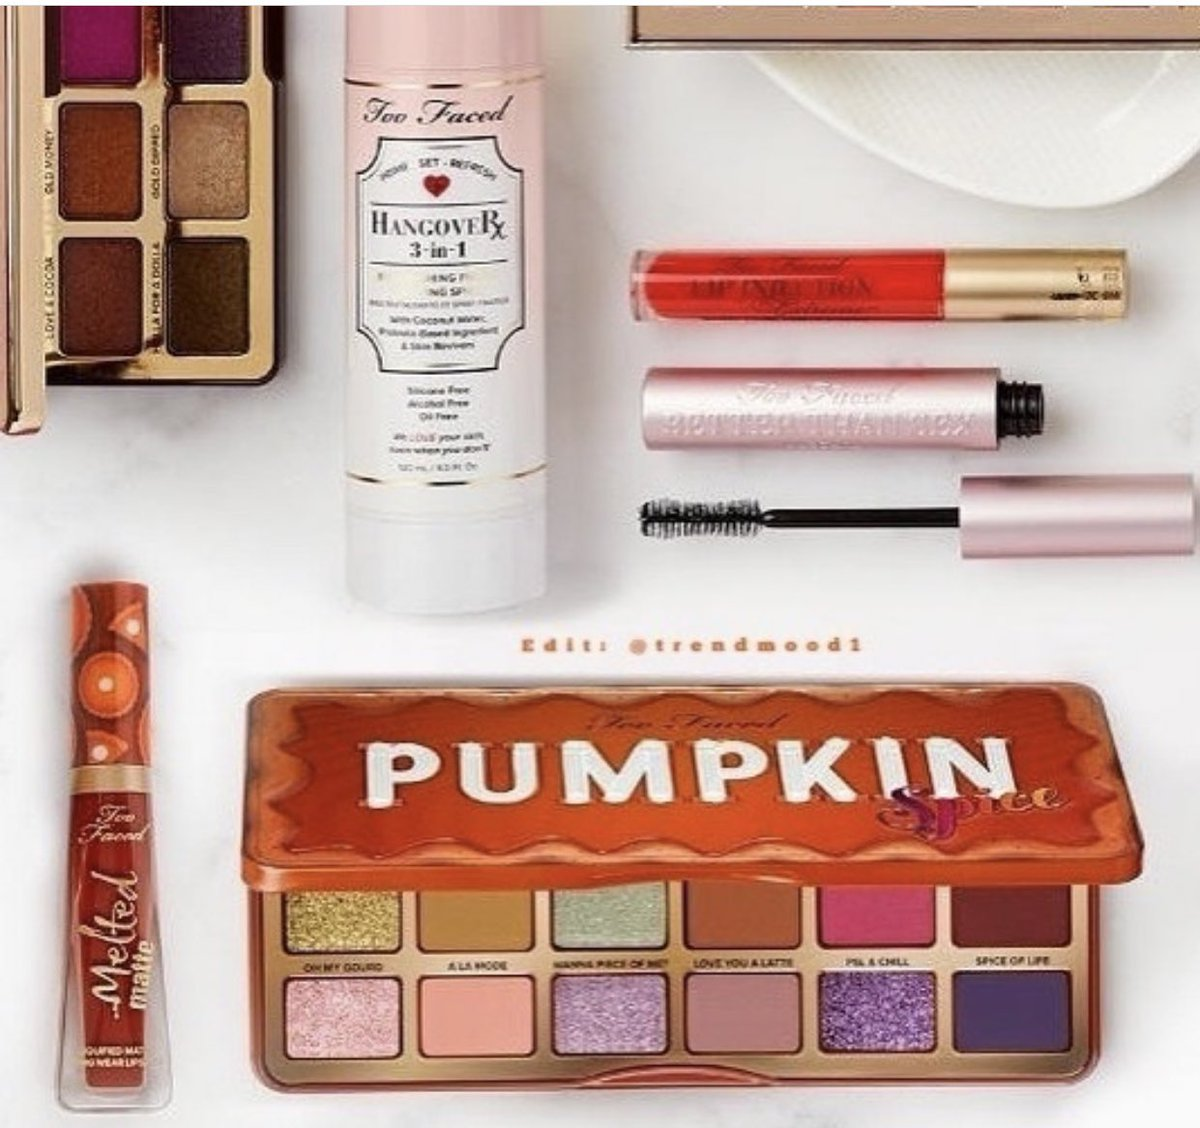 #SneakPeek #Fall is almost here, the #Pumpkin trend is back!  LKS like there is NEW! #PumpkinSpice items that are about to drop by #toofaced Includes: The Pumpkin Spice #EyeshadowPalette  The Pumpkin Spice Melted Matte  #LiquidLipstick  Online  AUGUST @hsnpic.twitter.com/q34V4Nirjt